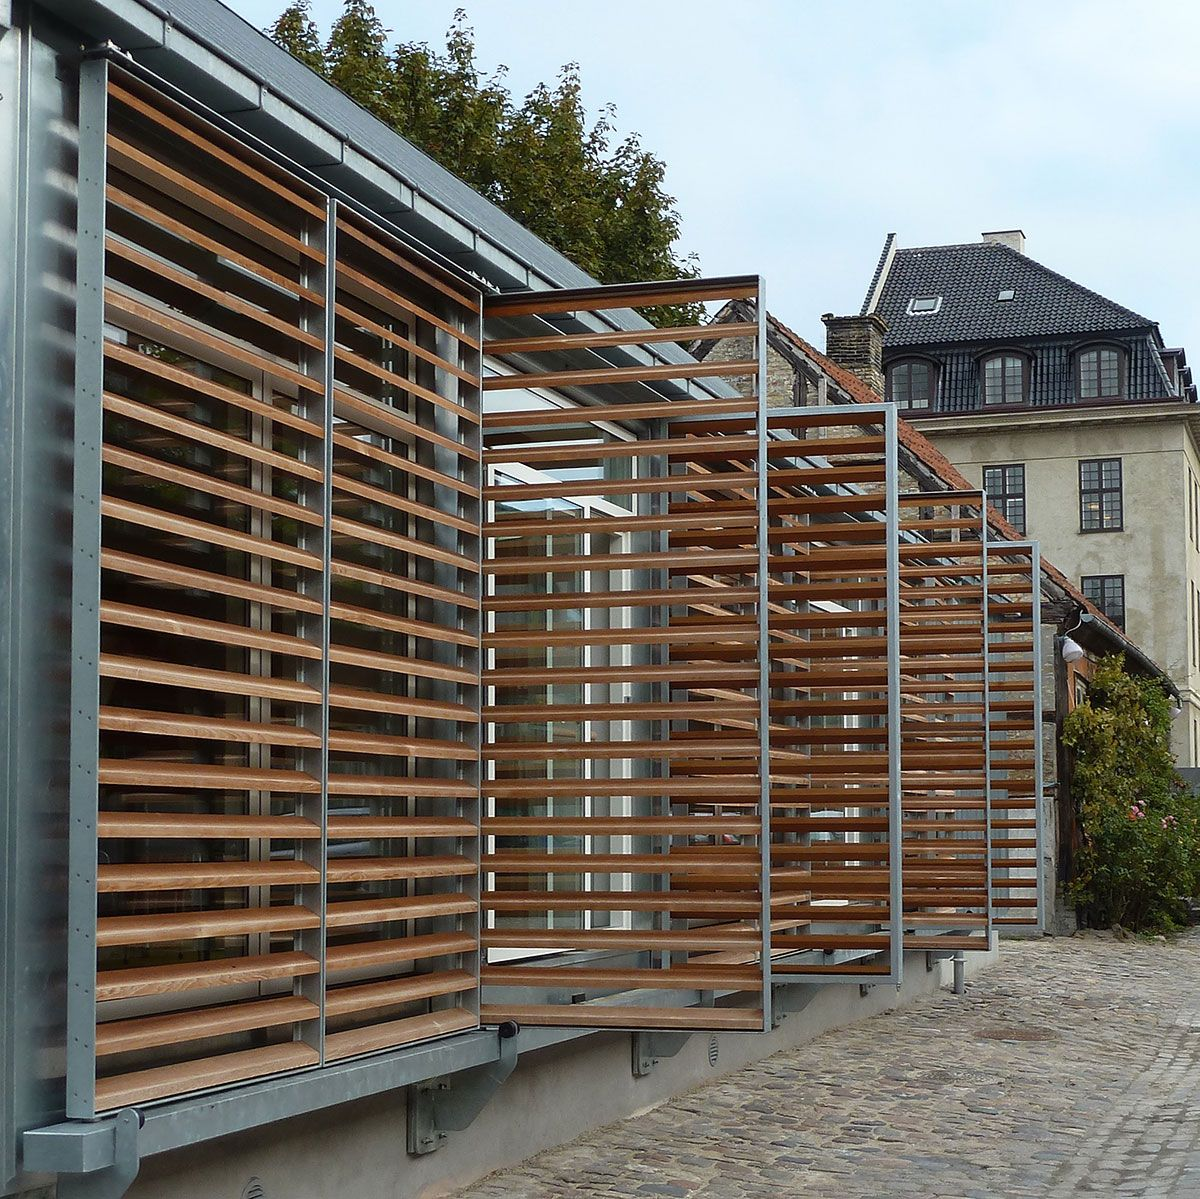 Shutter frames galvanized steel, equipped with horizontal